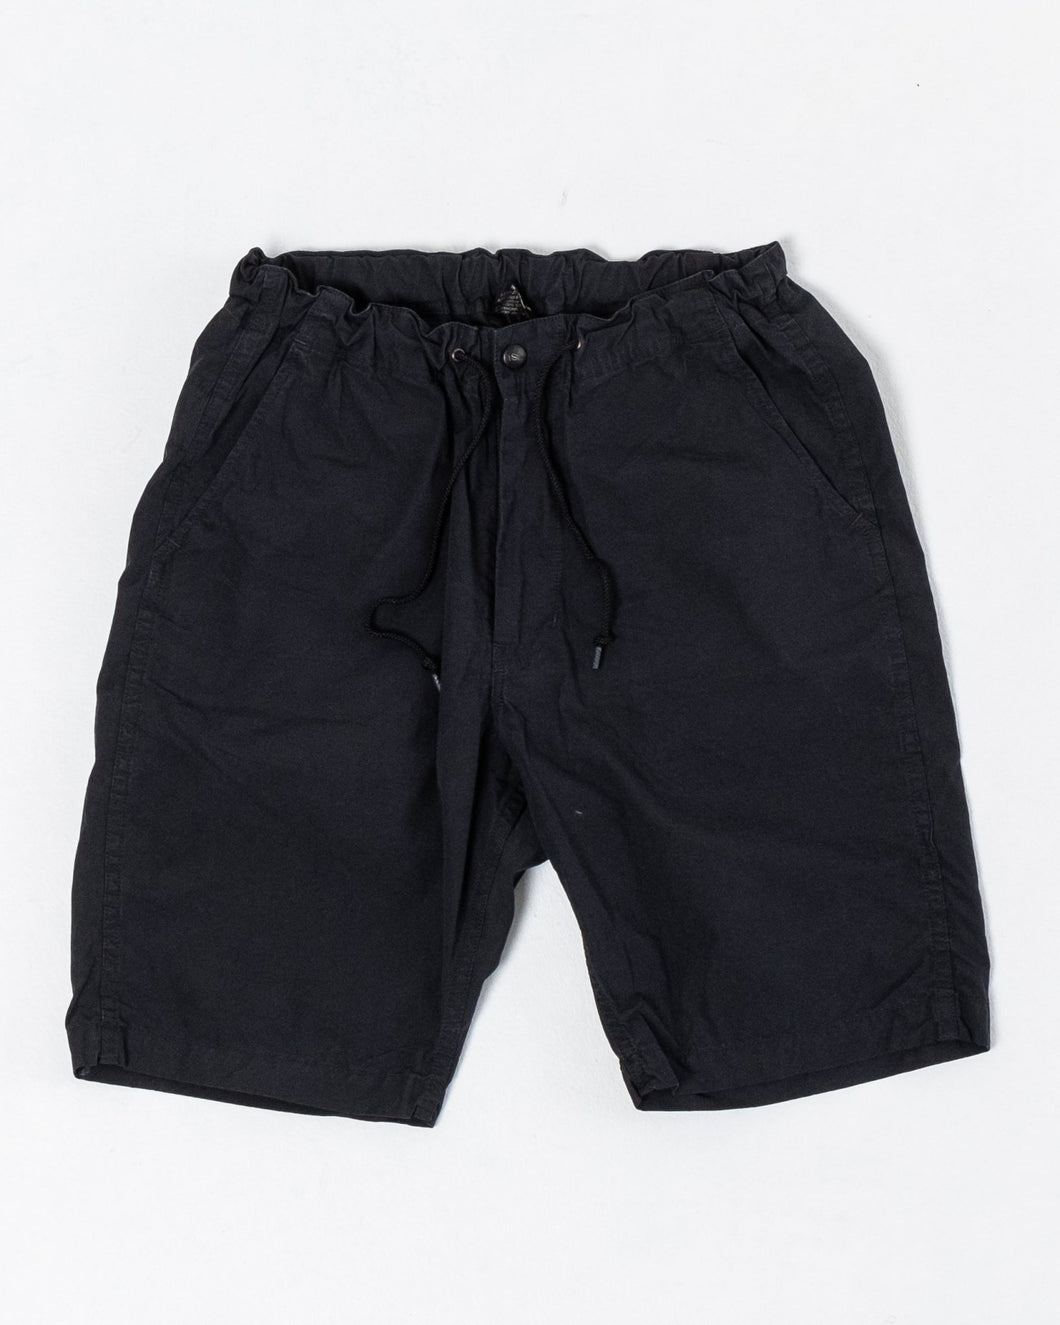 New Yorker Shorts Charcoal Gray - Meadow